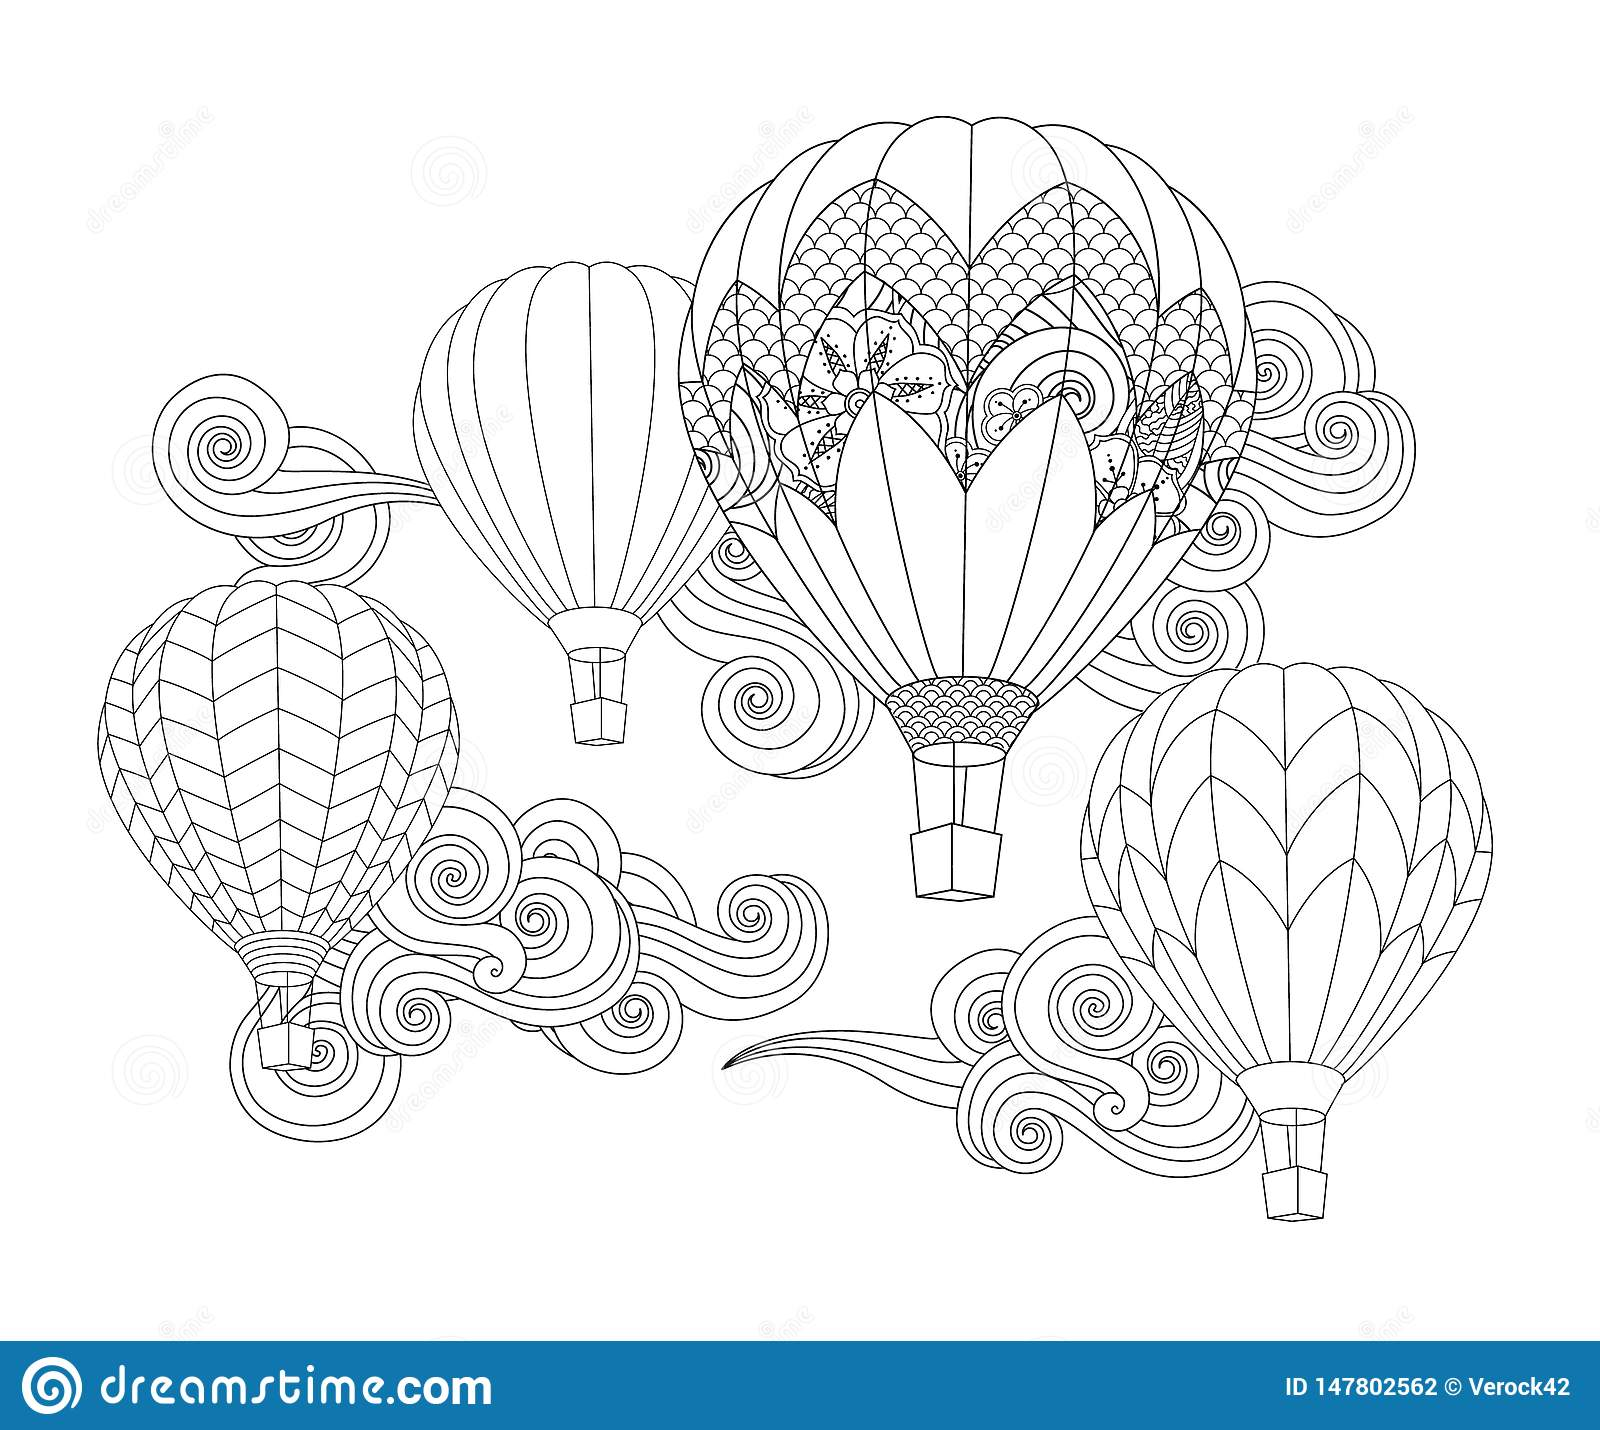 Hot Air Balloons In The Sky Zentangle Inspired Doodle Style